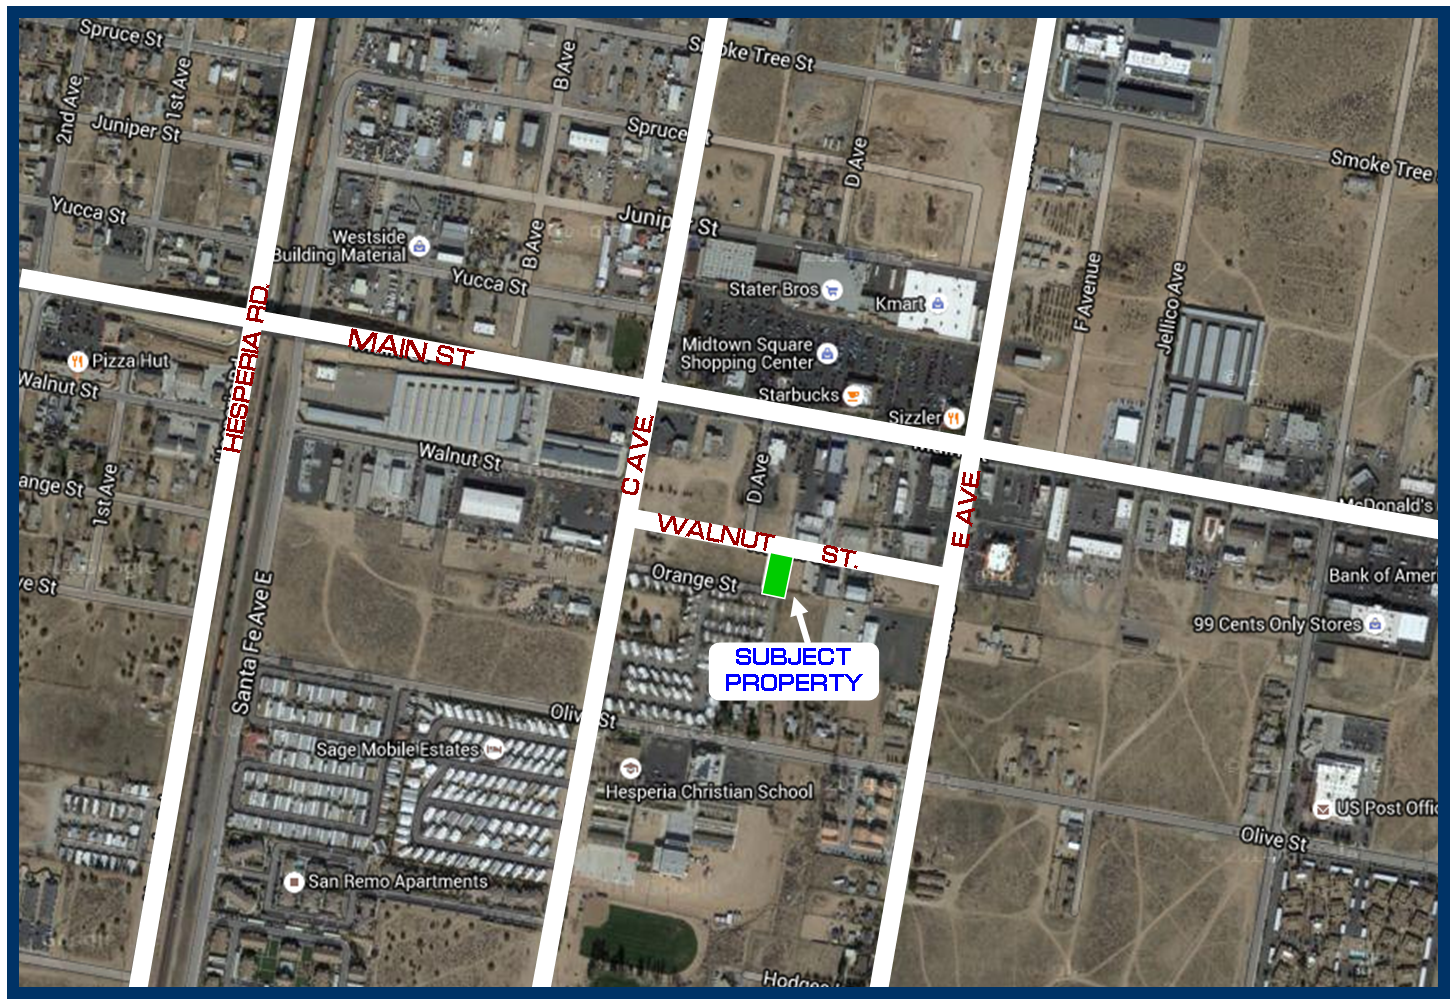 Commercial Lot For Sale On Walnut St In Hesperia CA - Map of usa for sale